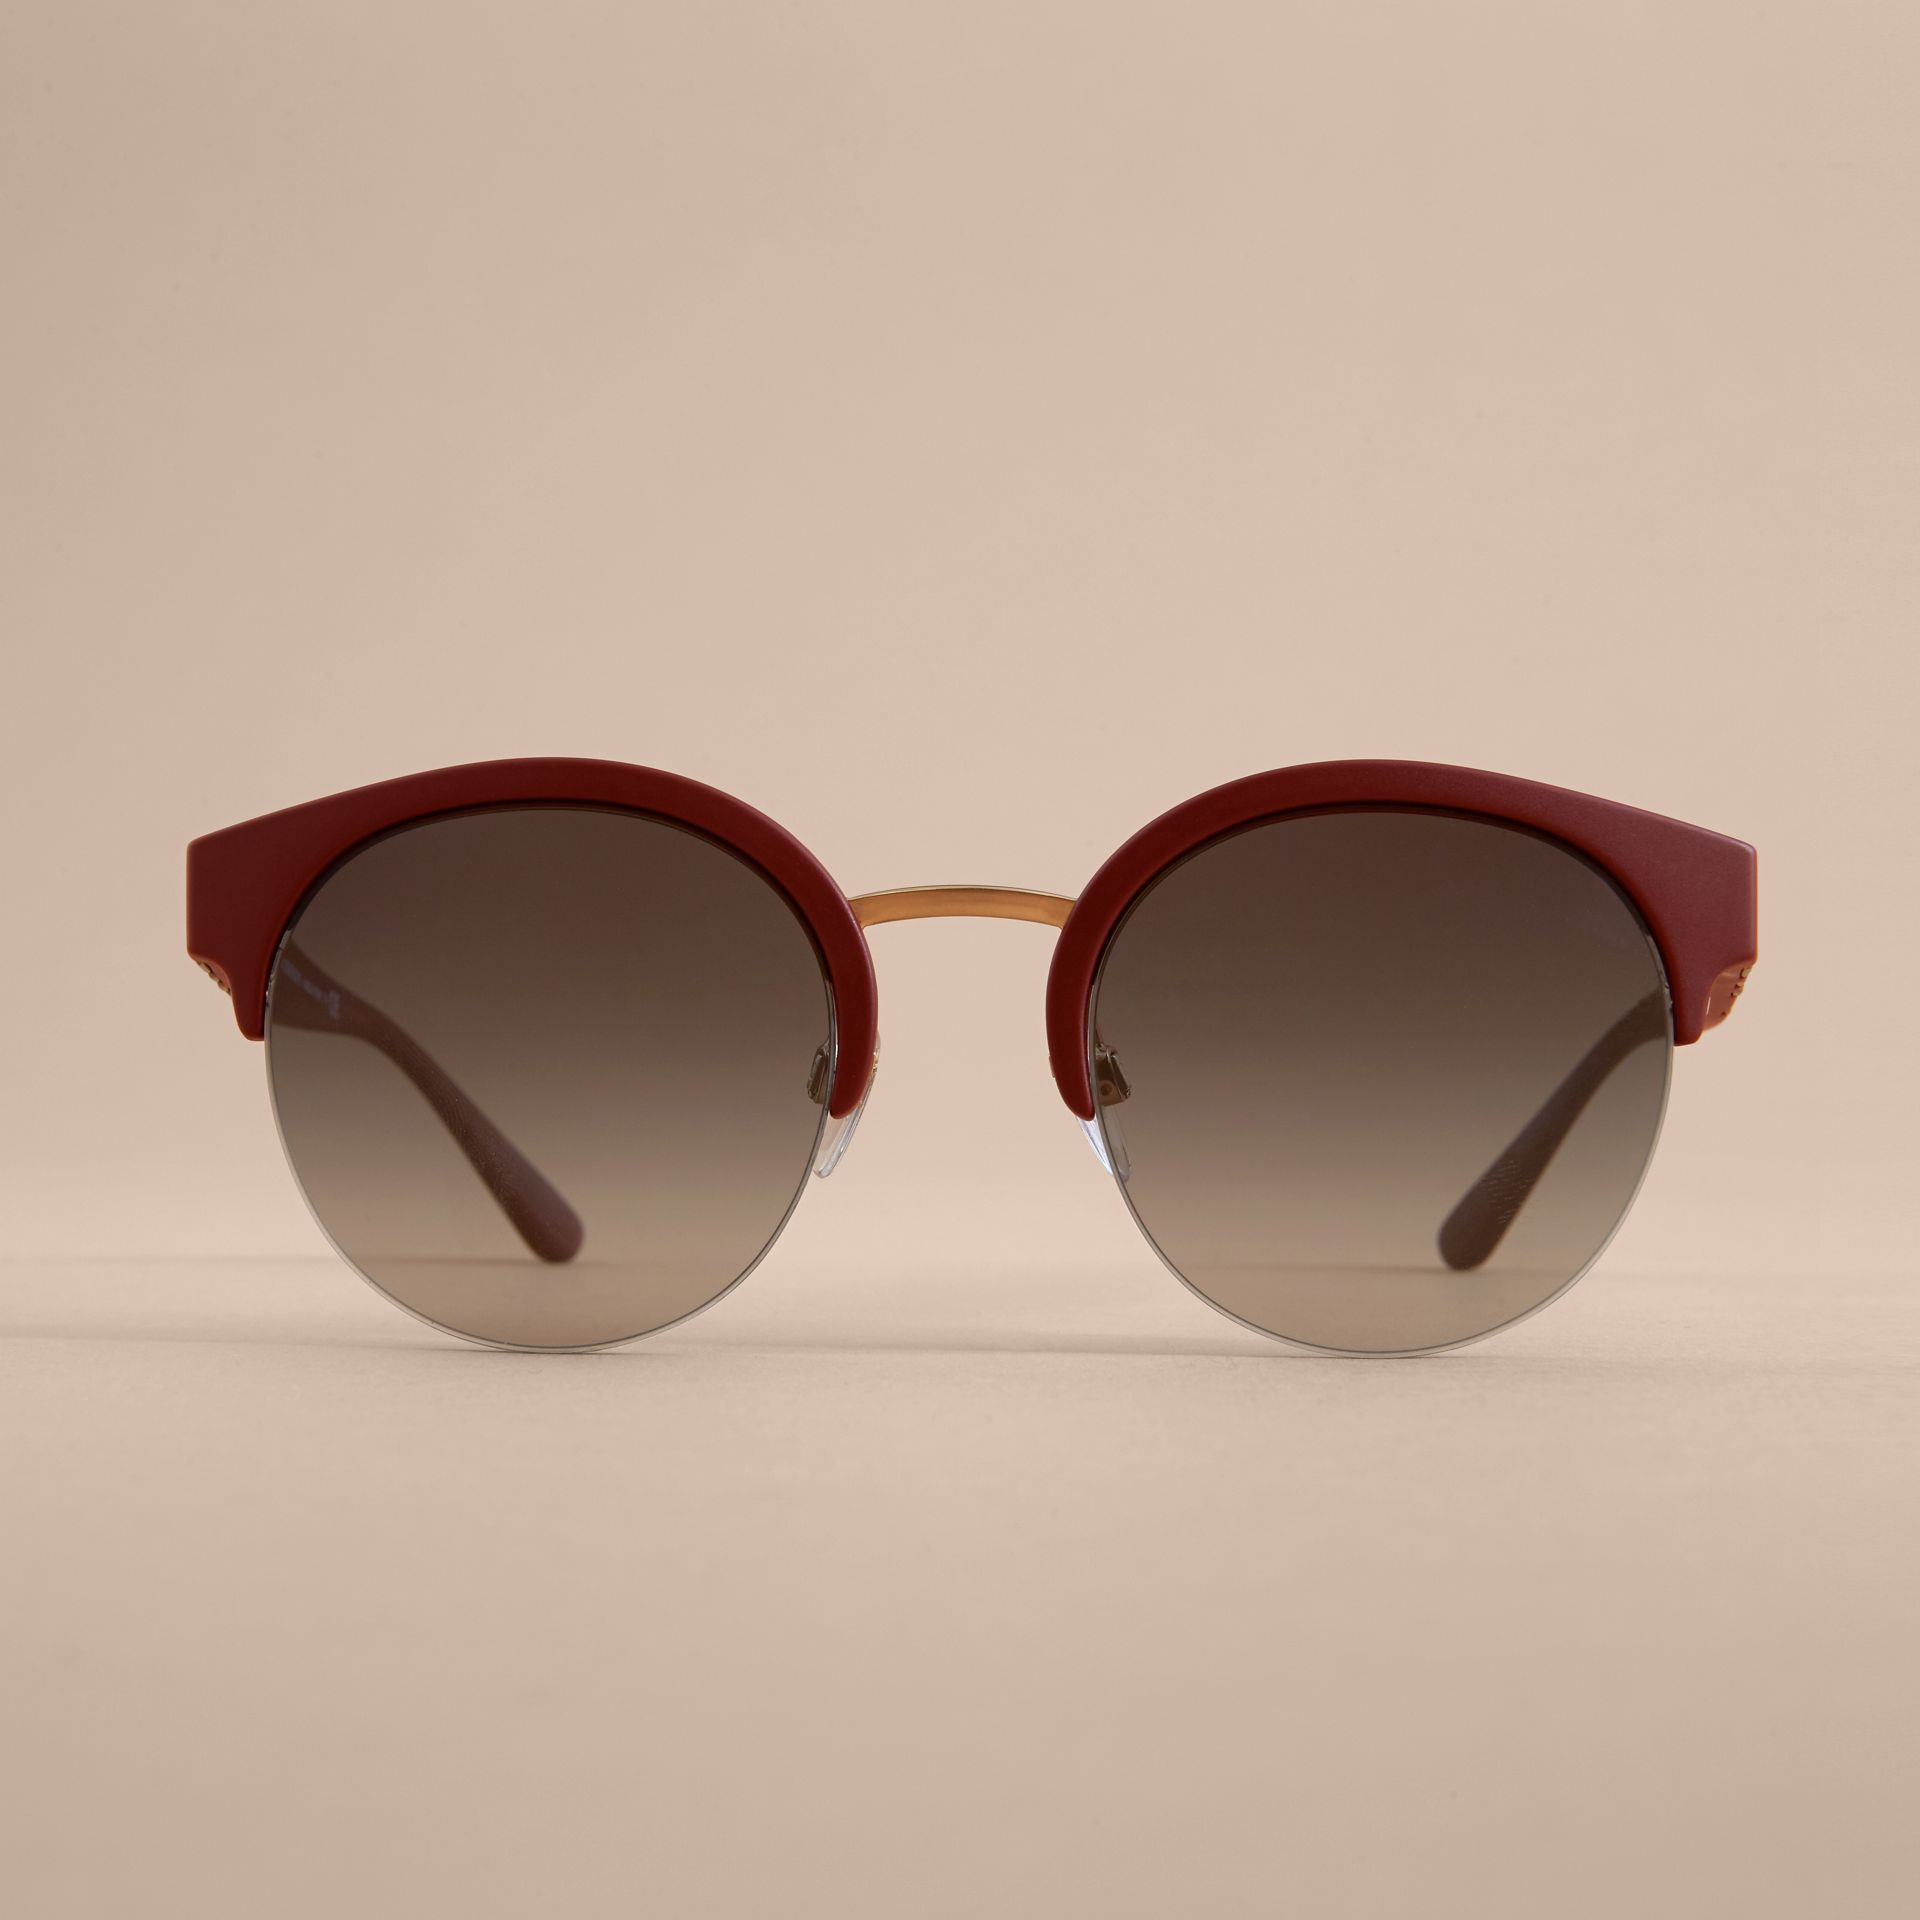 Check Detail Round Half-frame Sunglasses in Burgundy - Women | Burberry United Kingdom - gallery image 2